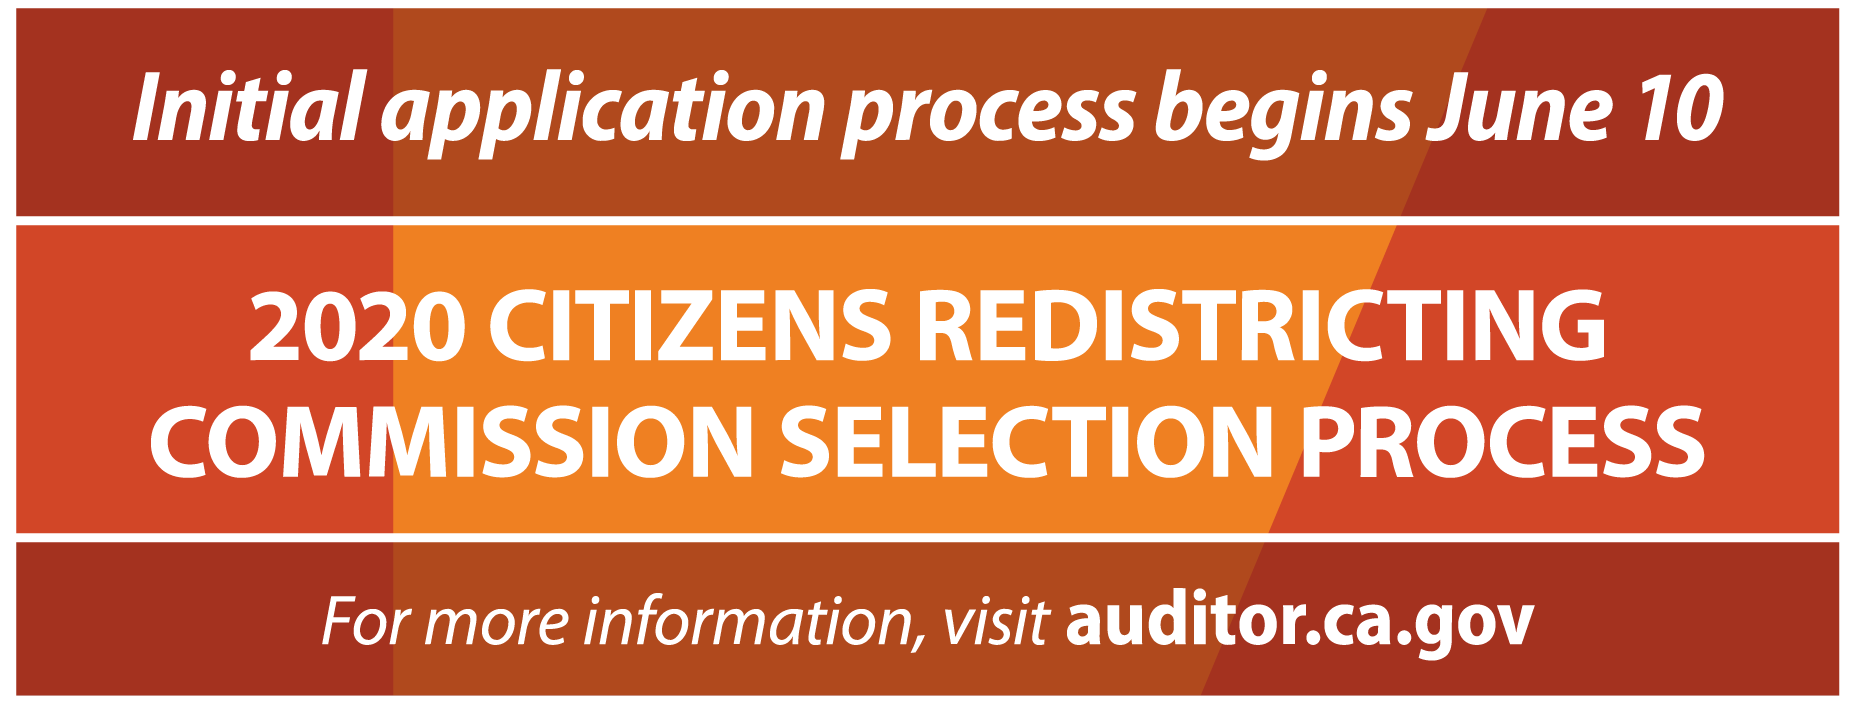 2020 Citizens Redistricting Commission - June 10, 2019, application process starts.